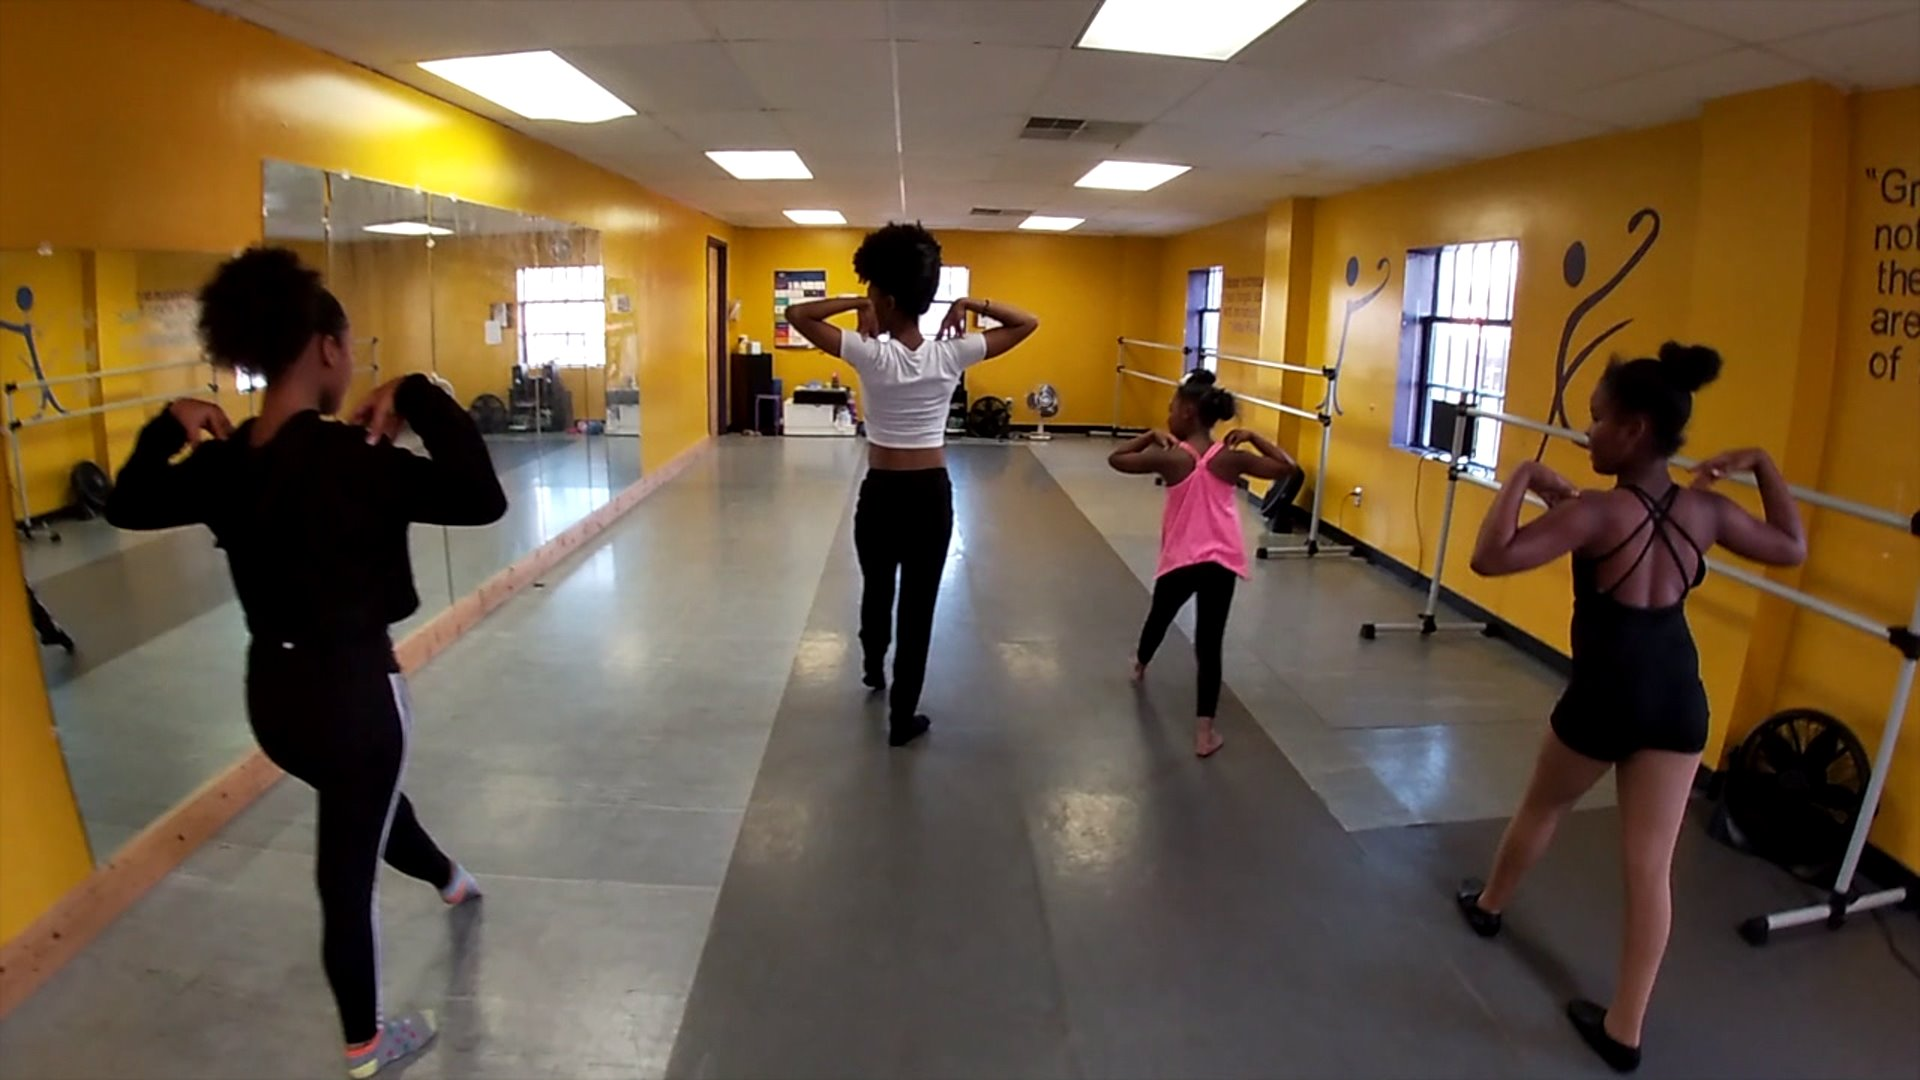 Dance program in Greensboro helps at-risk youth